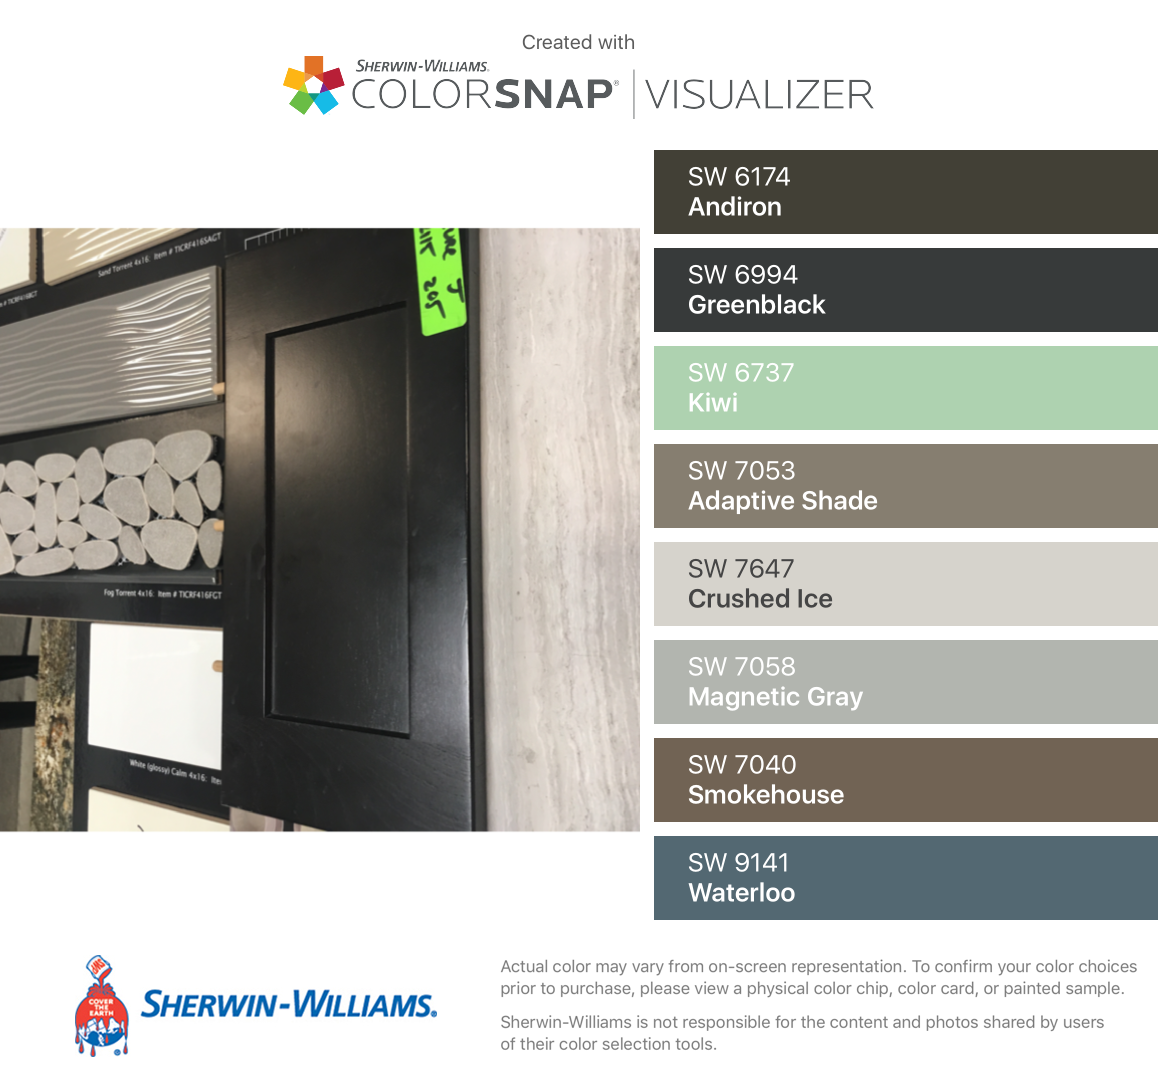 I found these colors with colorsnap visualizer for iphone by sherwin williams andiron sw 6174 greenblack sw 6994 kiwi sw 6737 adaptive shade sw